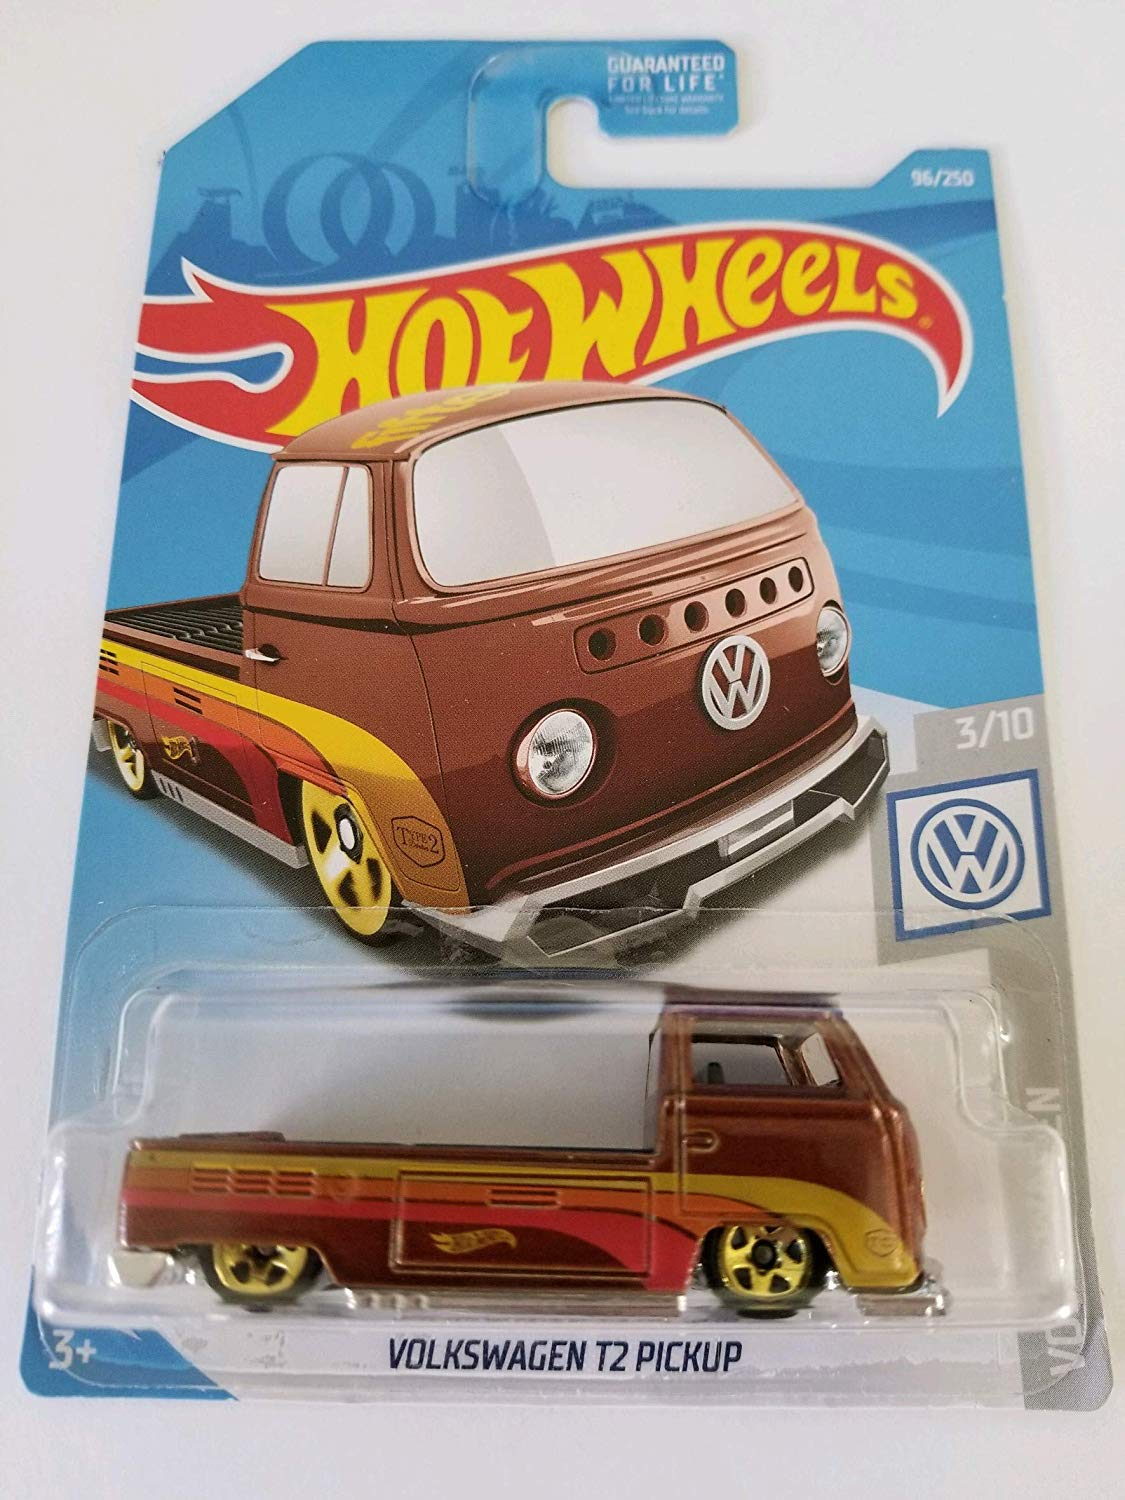 Amazon.com: Hot Wheels 2019 Volkswagen 3/10 - Volkswagen T2 ...